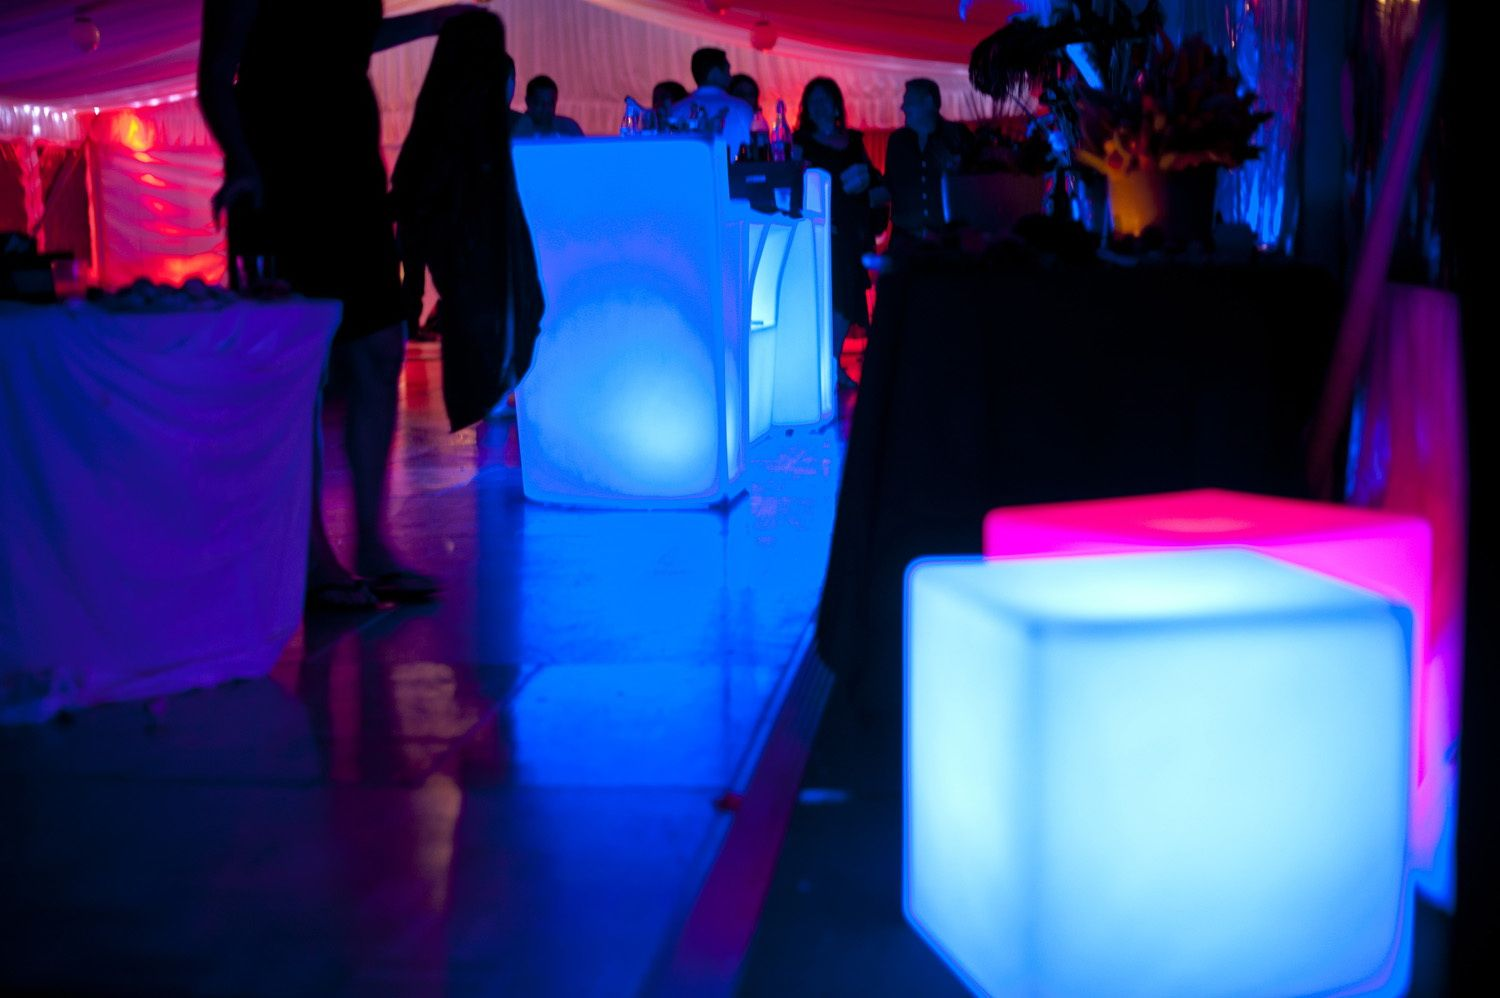 Illuminated Party Seating Party Furniture Party Seating Party Hire